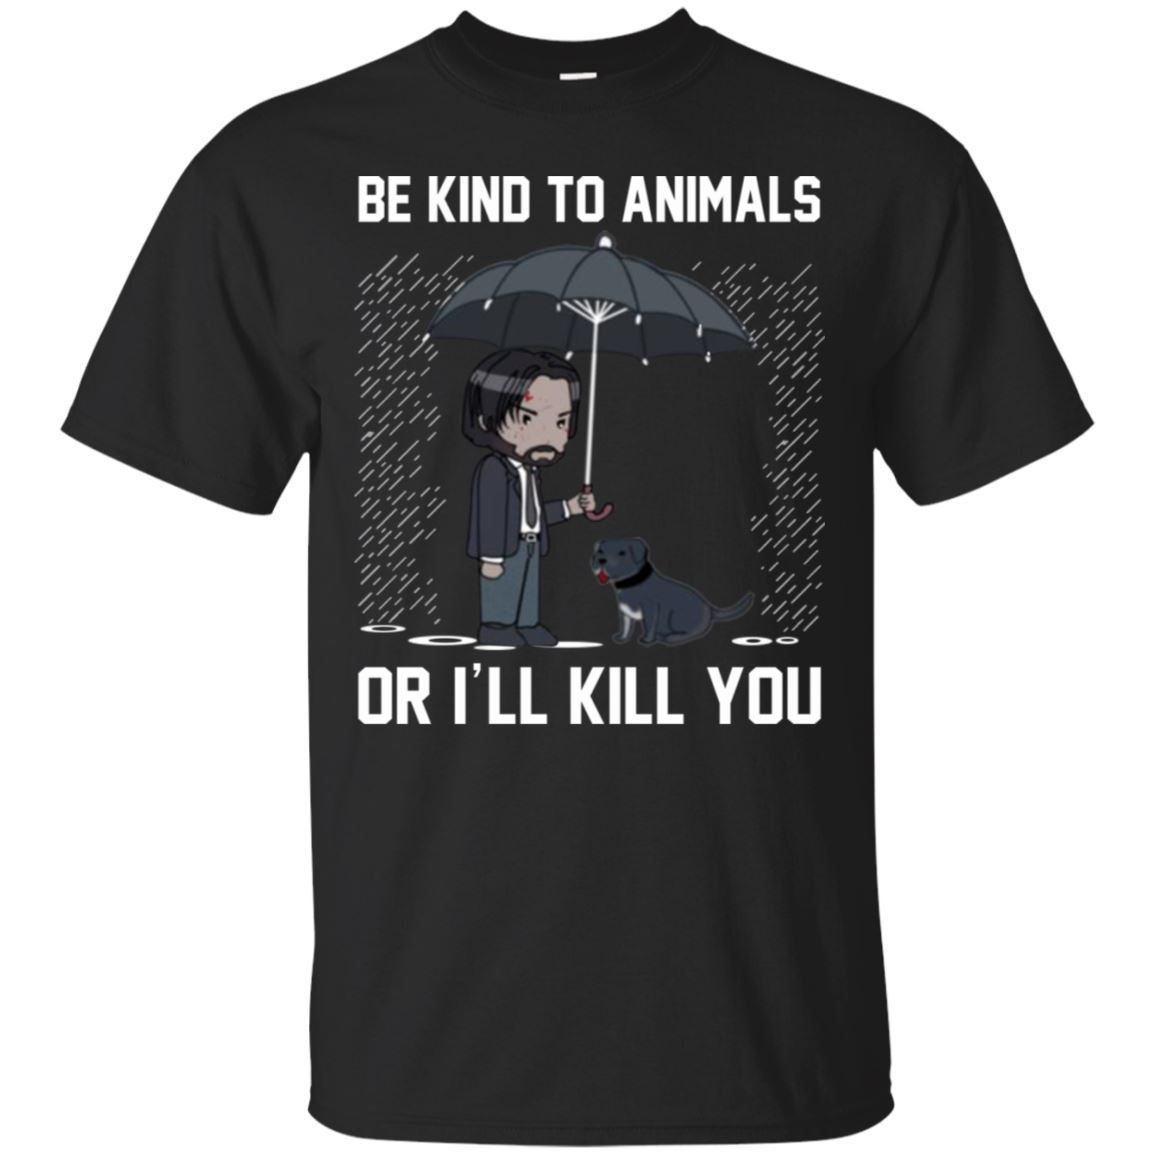 Keanu Reeves   T  -  shirt   Be Kind To Animal Or I'll Kill You   Shirt   Short Sleeve Cool Casual pride   t     shirt   men Unisex Fashion